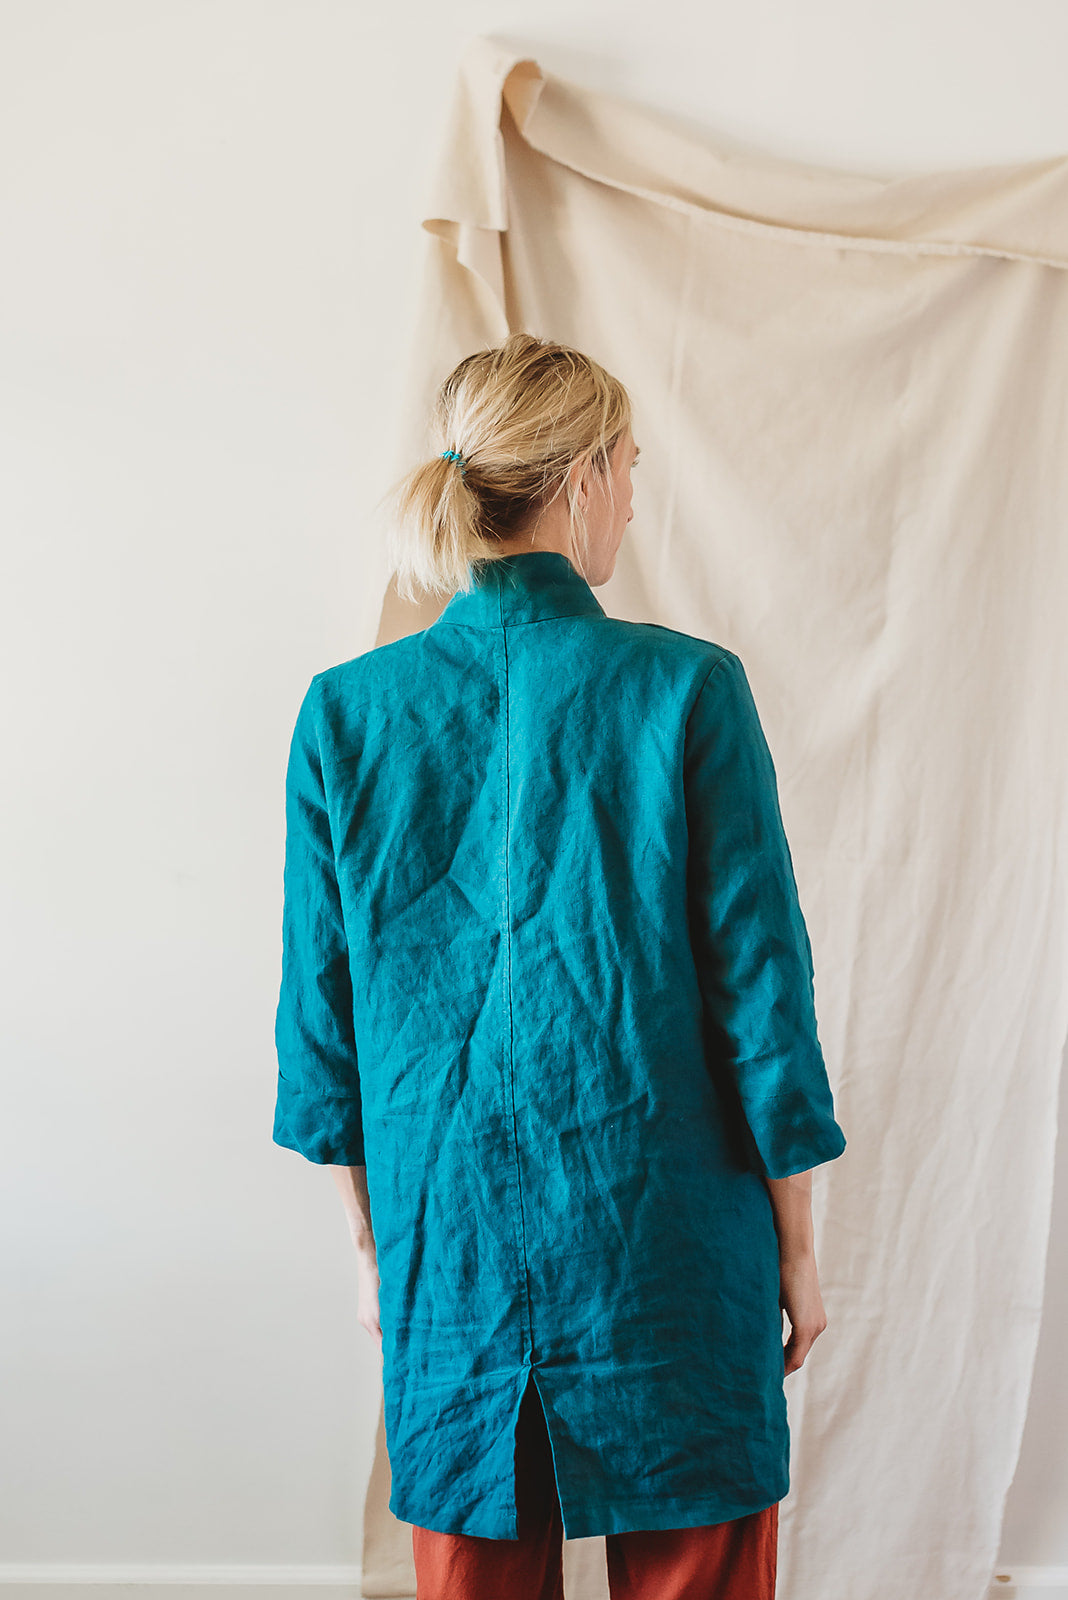 INGRID lab coat, teal